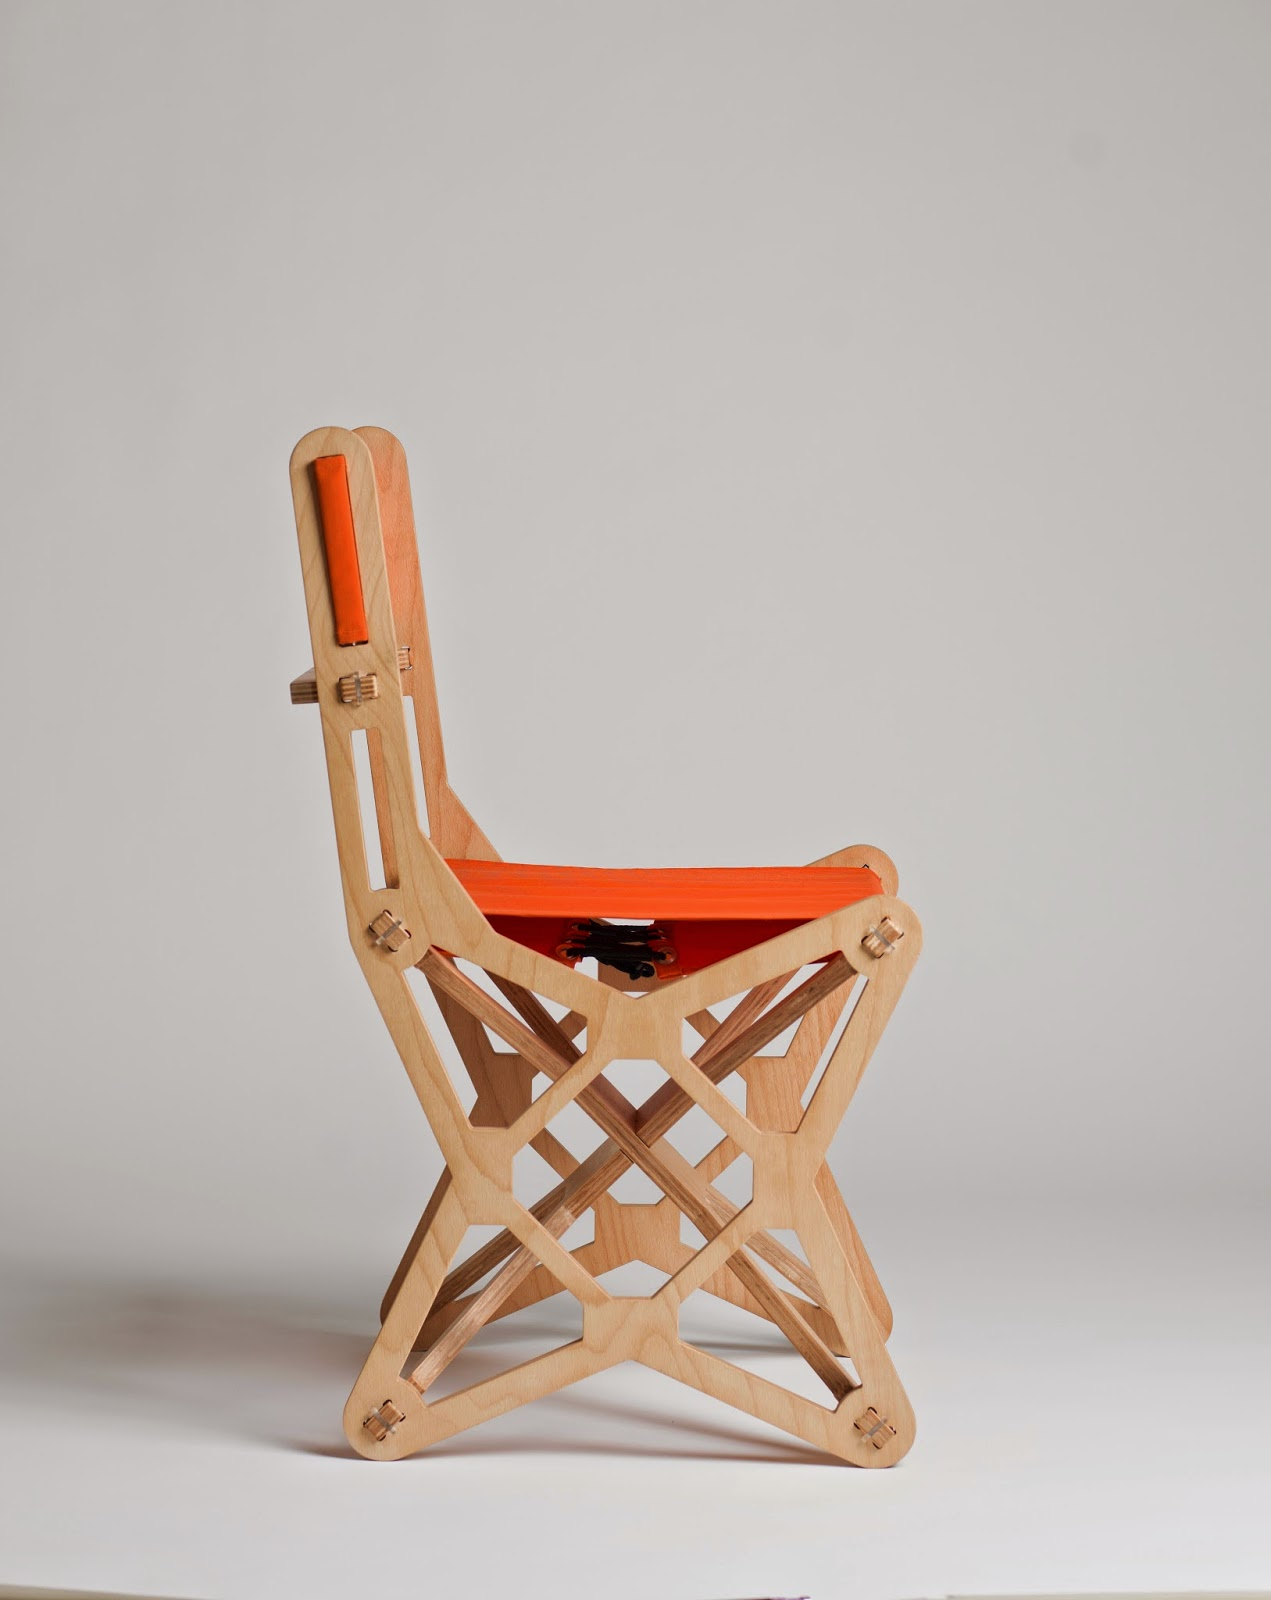 wood chair accessories french club chairs for sale darya girina interior design wondrous amazing